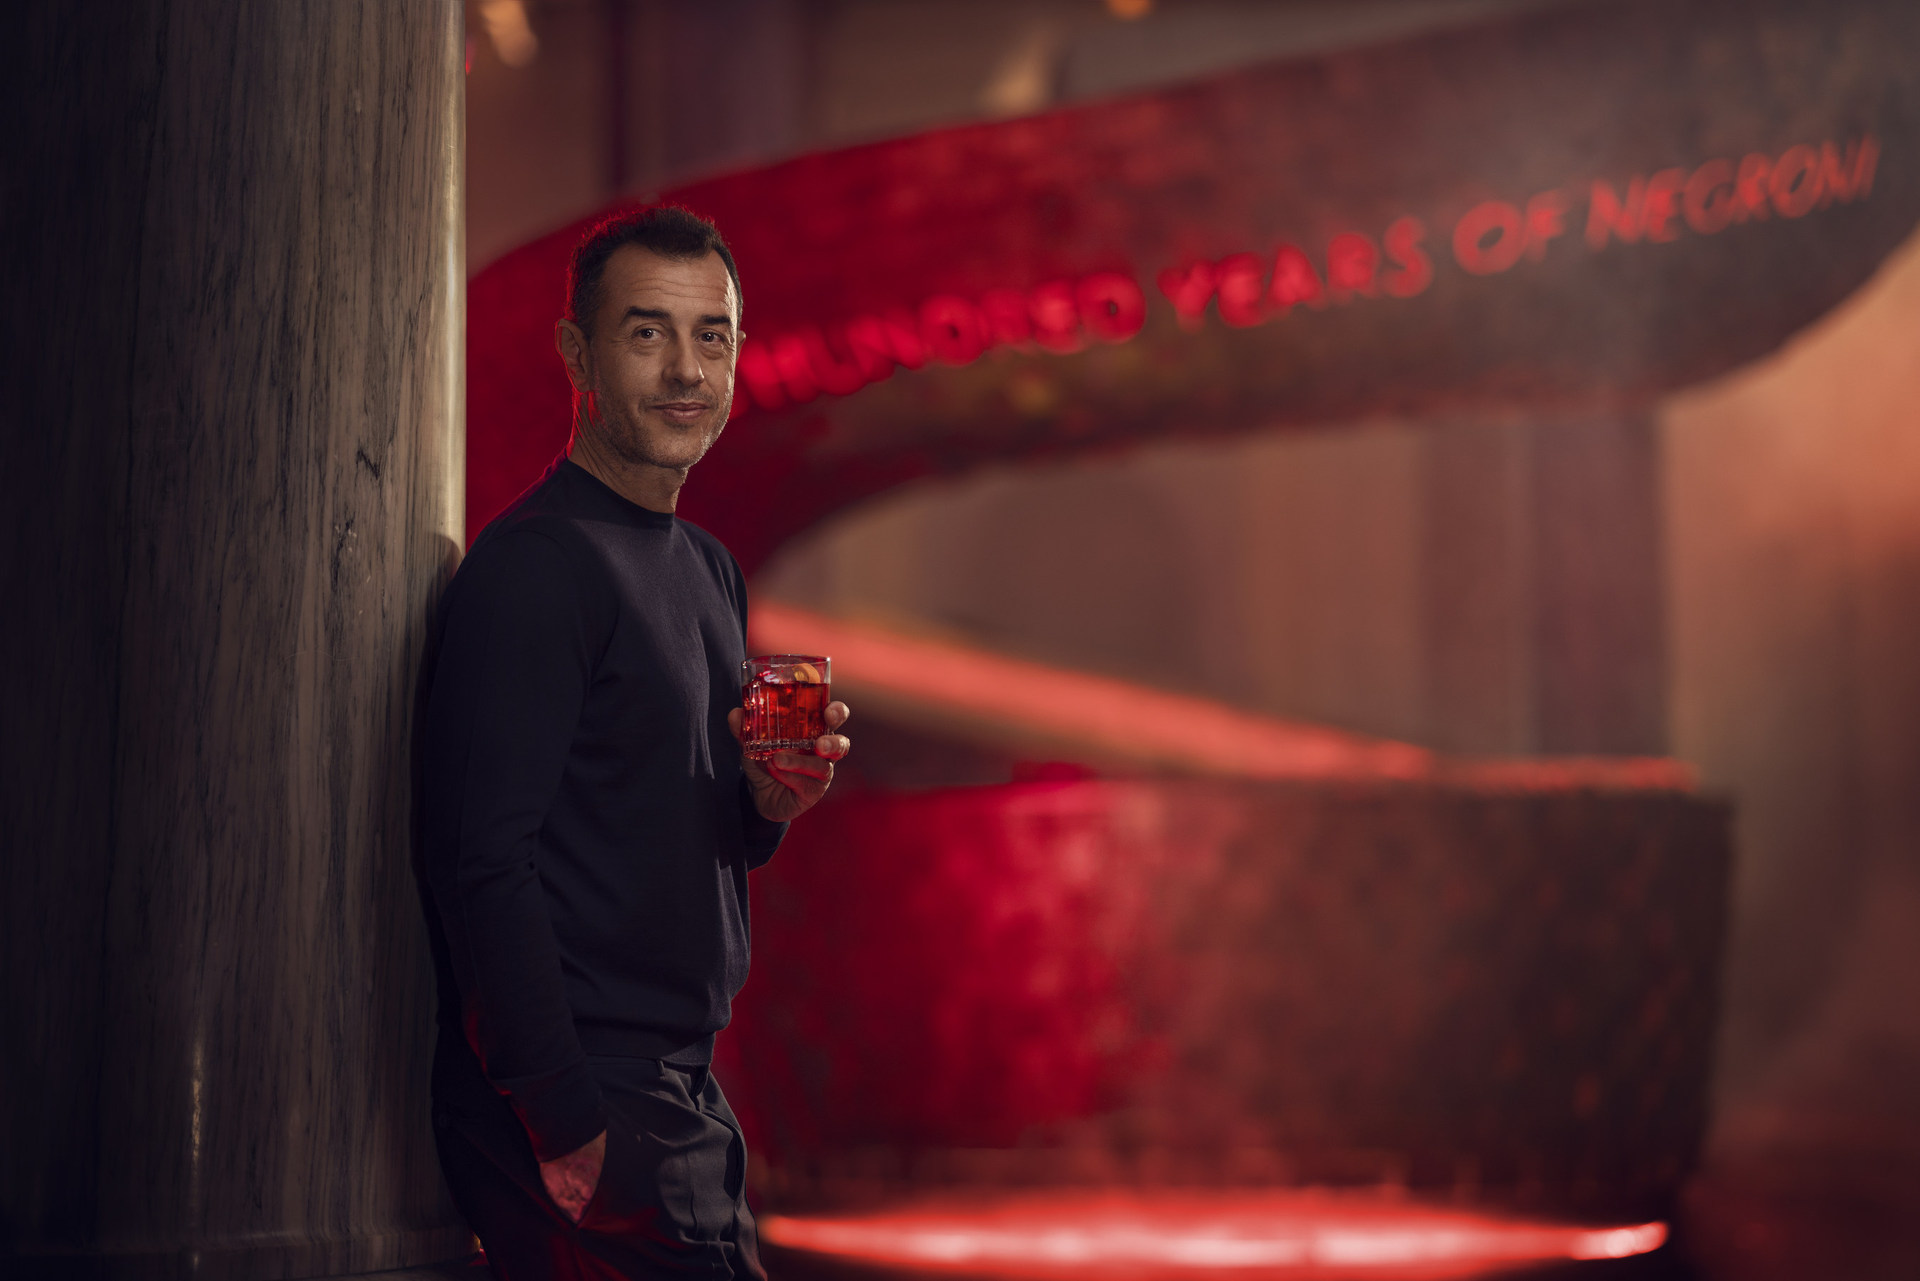 Matteo Garrone on the set of Entering Red, his latest masterpiece, filmed for Campari as part of the 2019 Red Diaries campaign, staring Ana De Armas